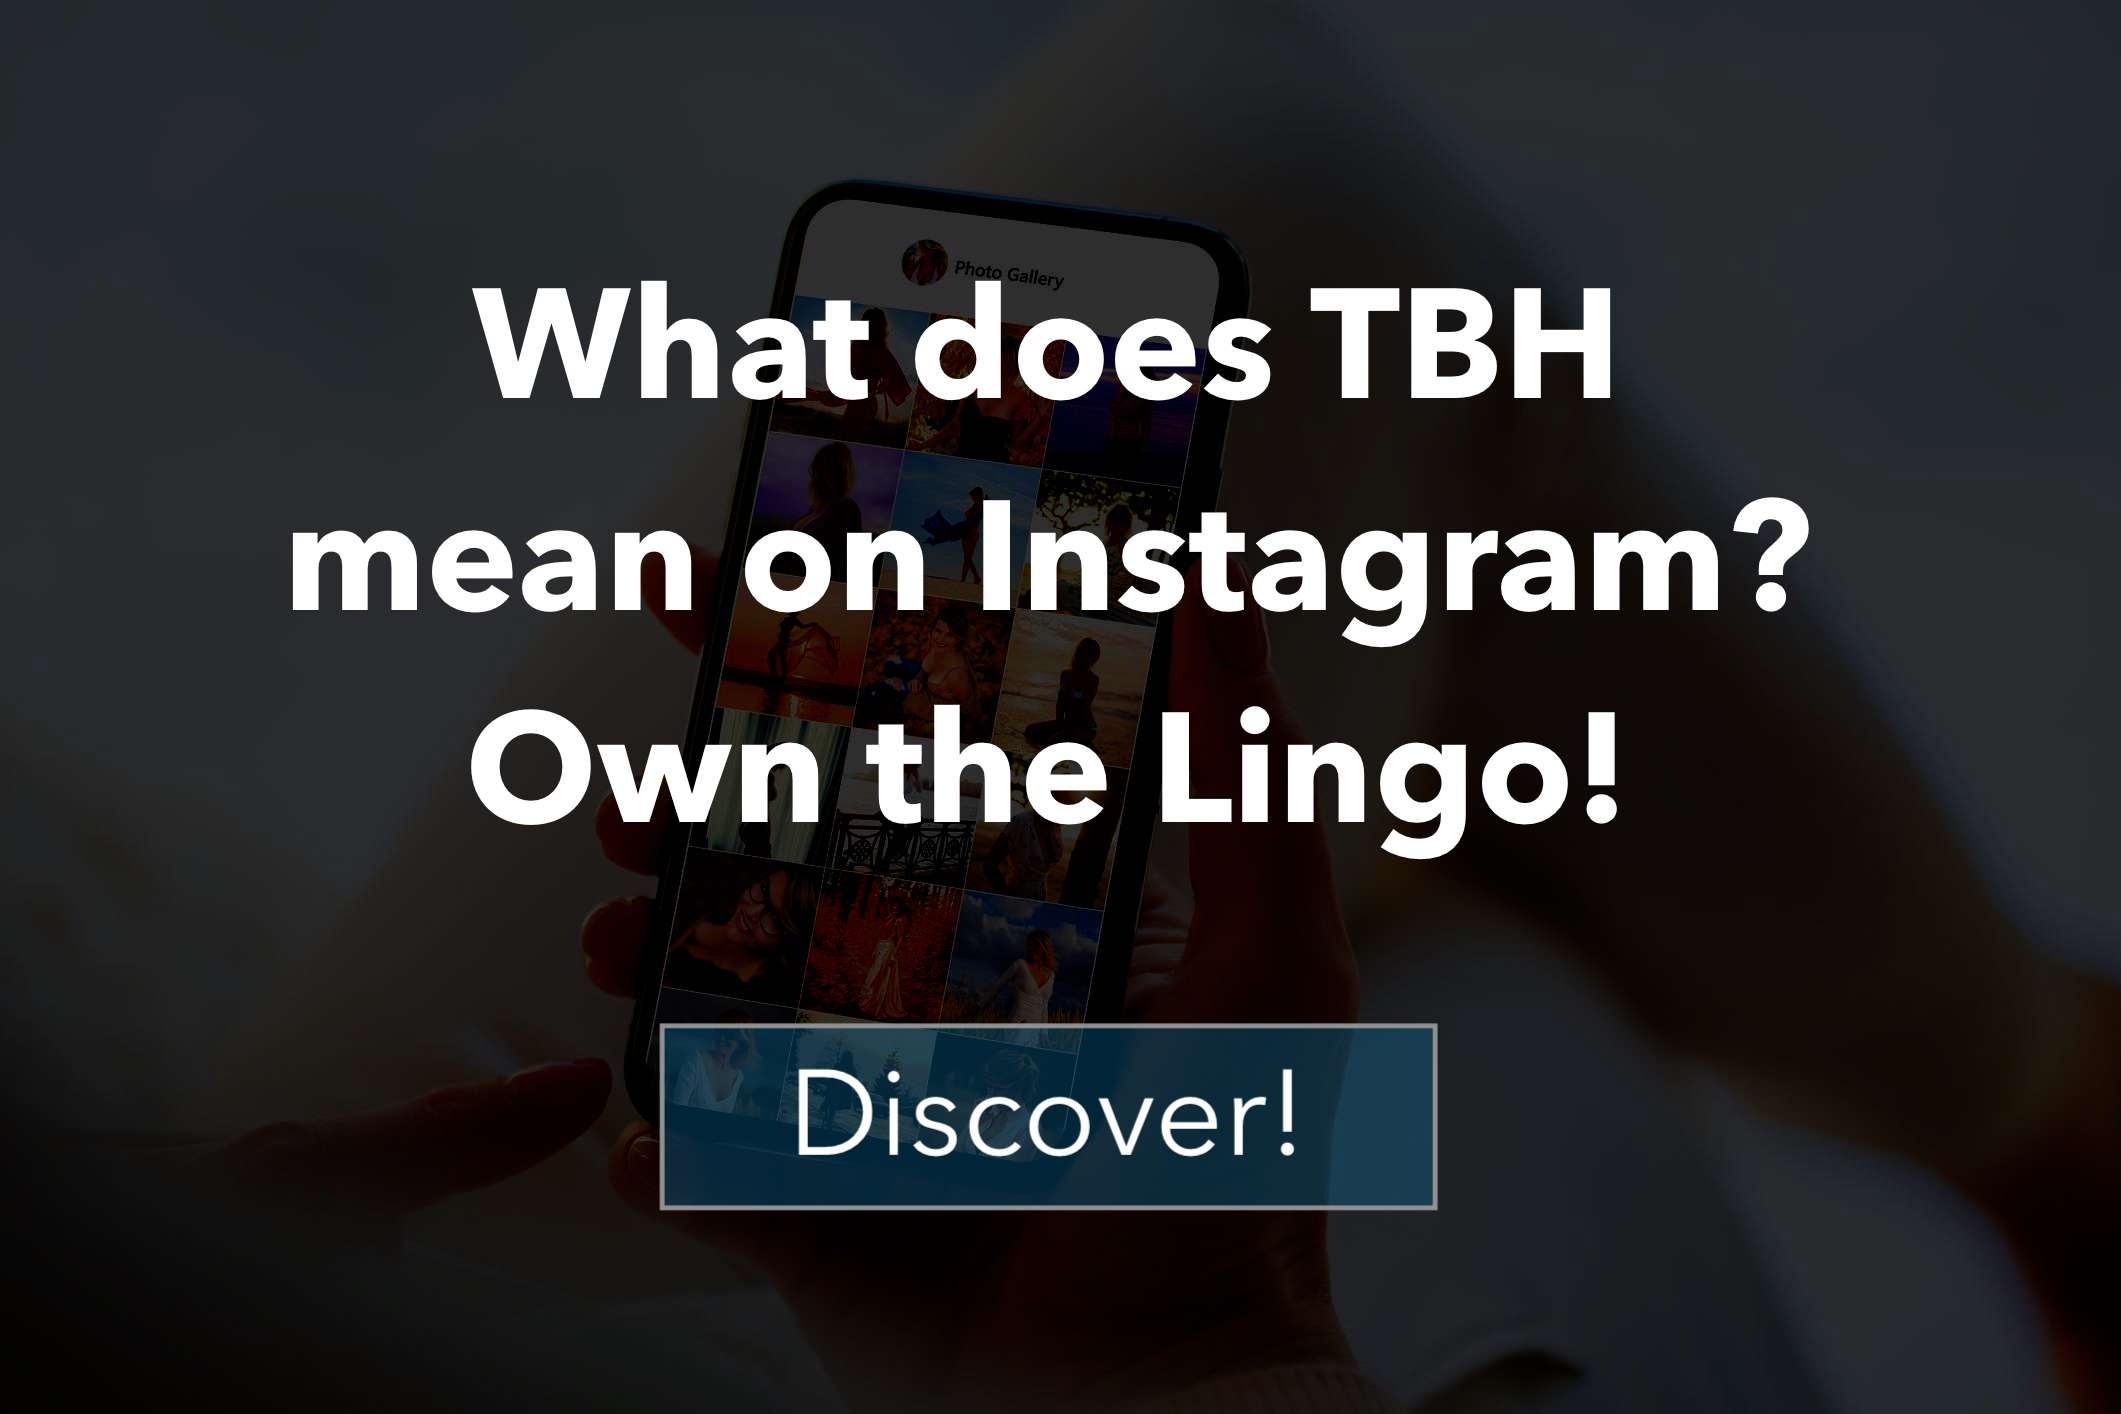 What does TBH mean on Instagram?